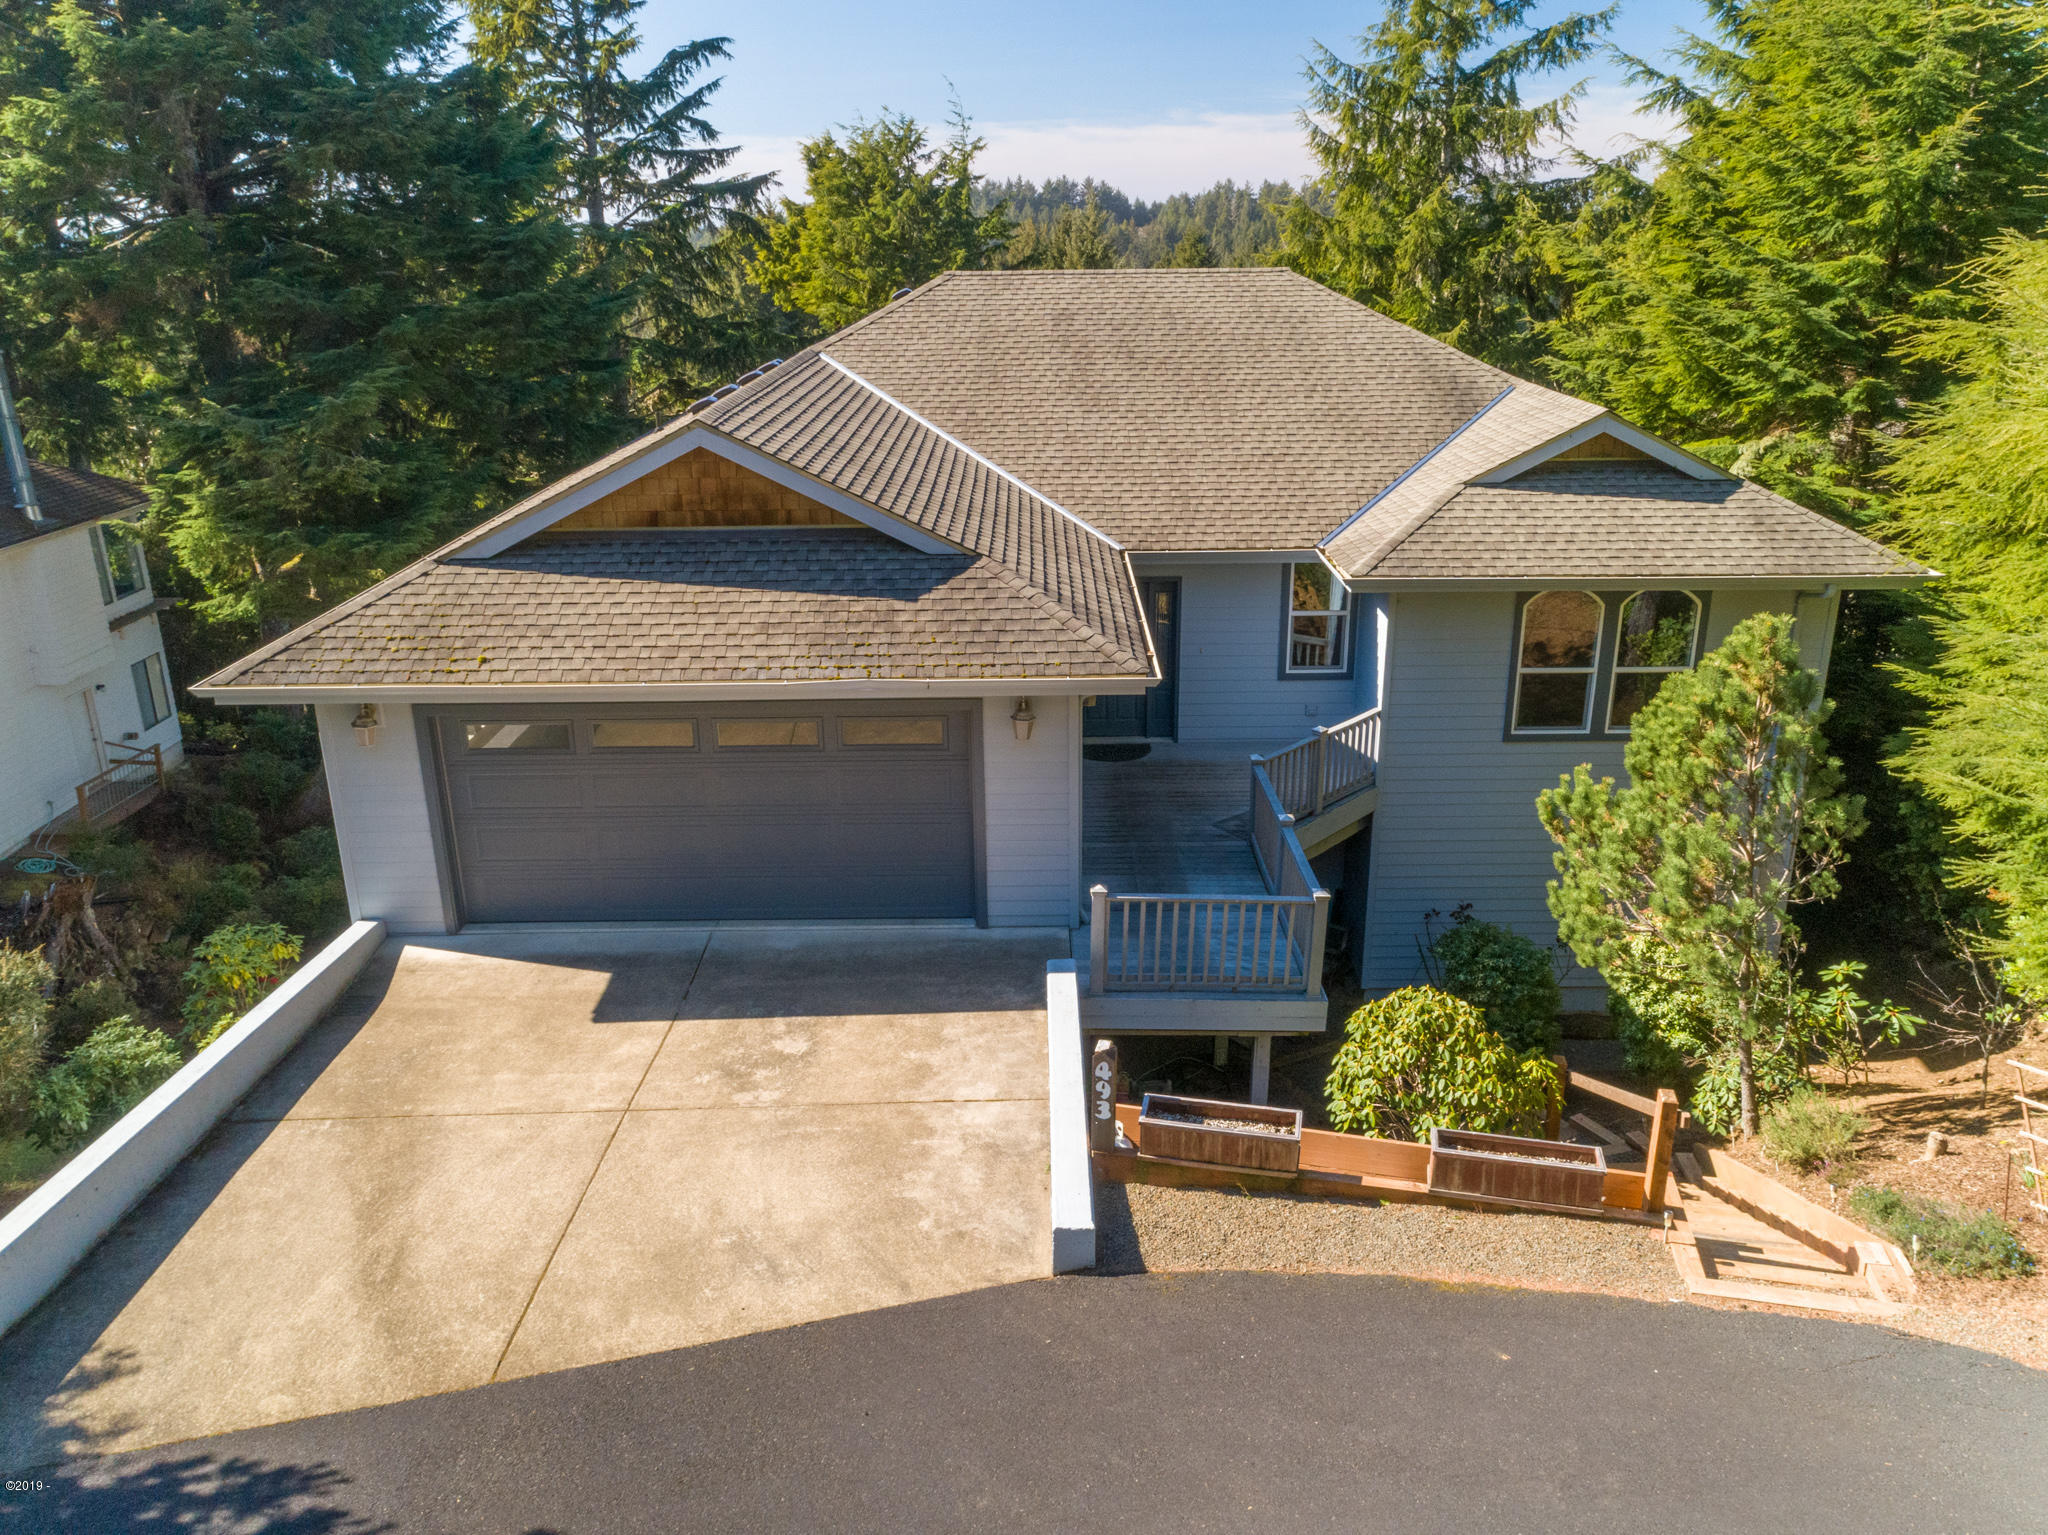 493 Spruce Burl Ln, Gleneden Beach, OR 97388 - Front of Home